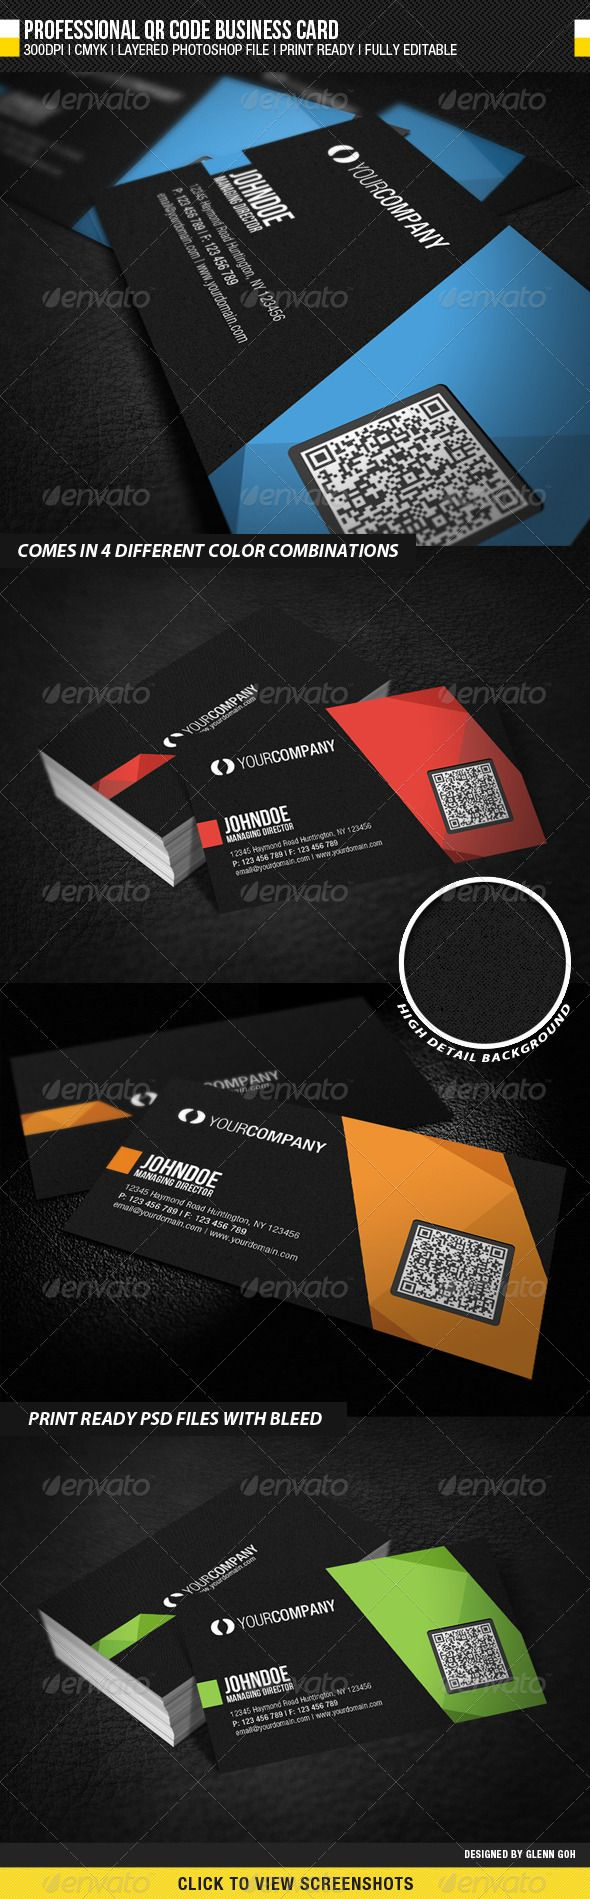 Professional QR Code Business Card | Qr codes, Business cards and ...